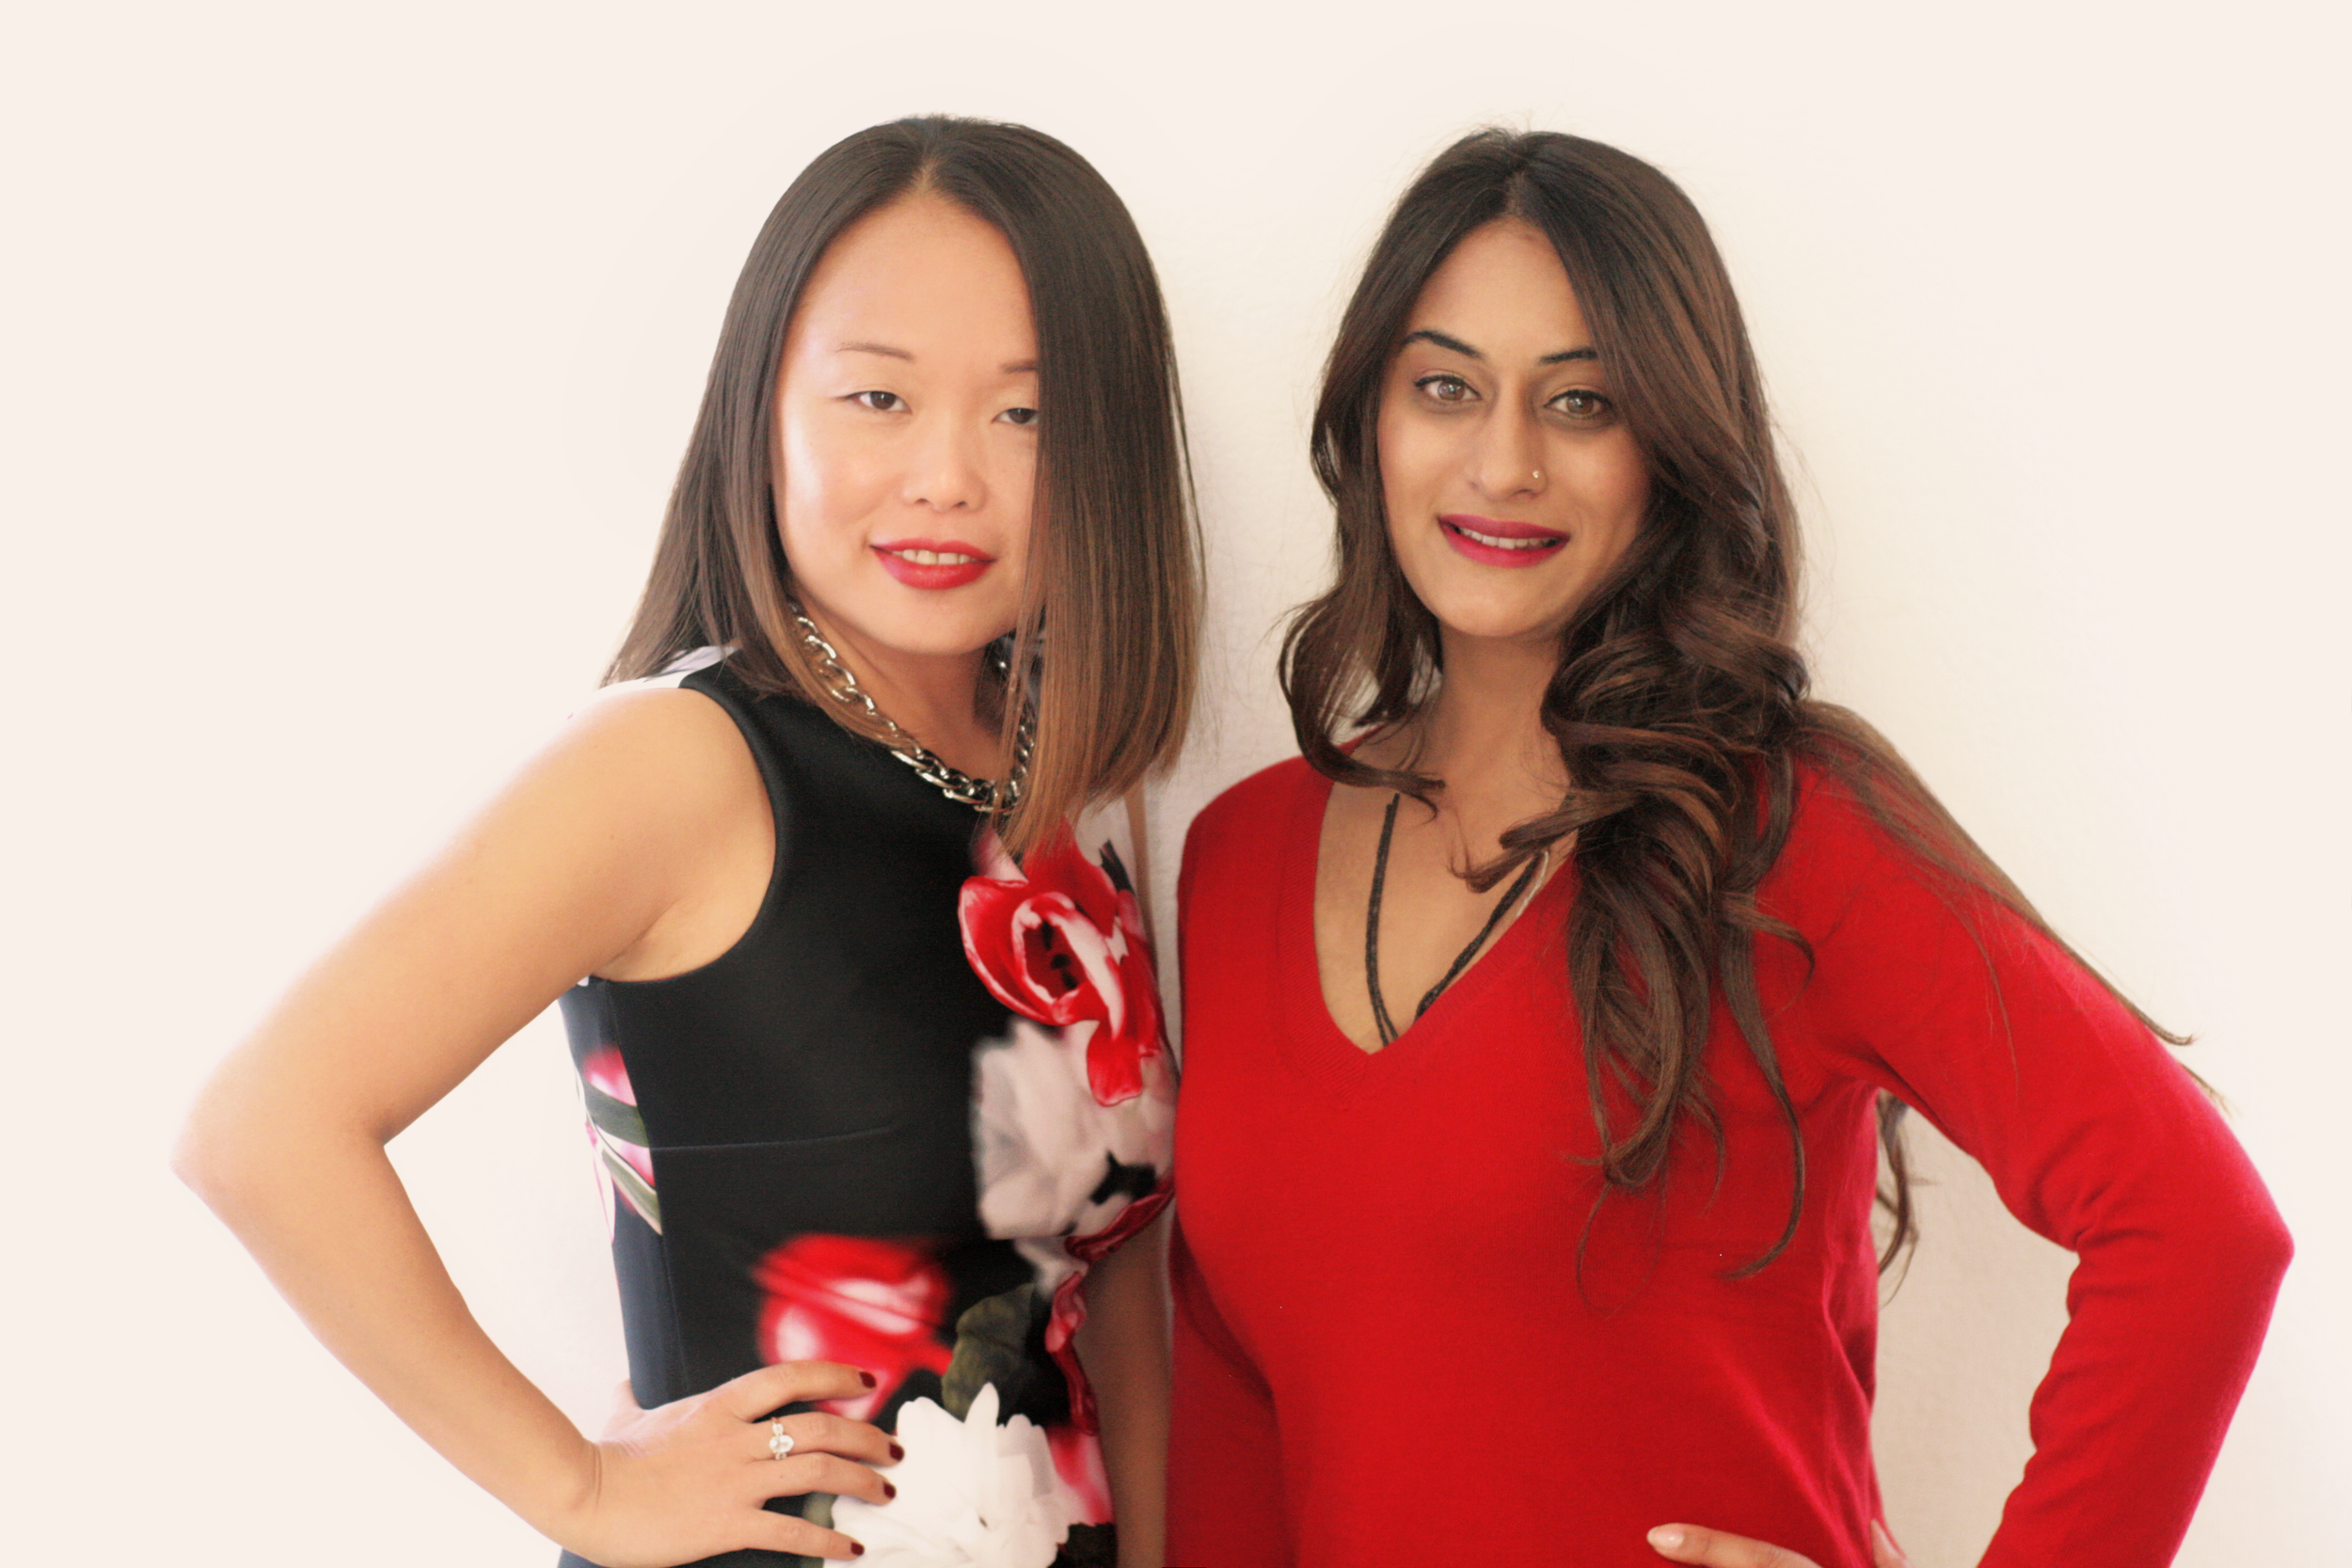 About our Founders - Elena Ledoux is a mom of 2 boys, an attorney and the Founder of Superb Maids - the top maid service in Las Vegas.Dina Patel is a pediatric nurse case practitioner. She is the Co-Founder of the Healthy Sunrise Foundation, providing access to essential healthcare for pregnant women.The two friends joined forces to bring Mommy GO to the world because they believe that a healthy, natural way to boost the energy is much needed.